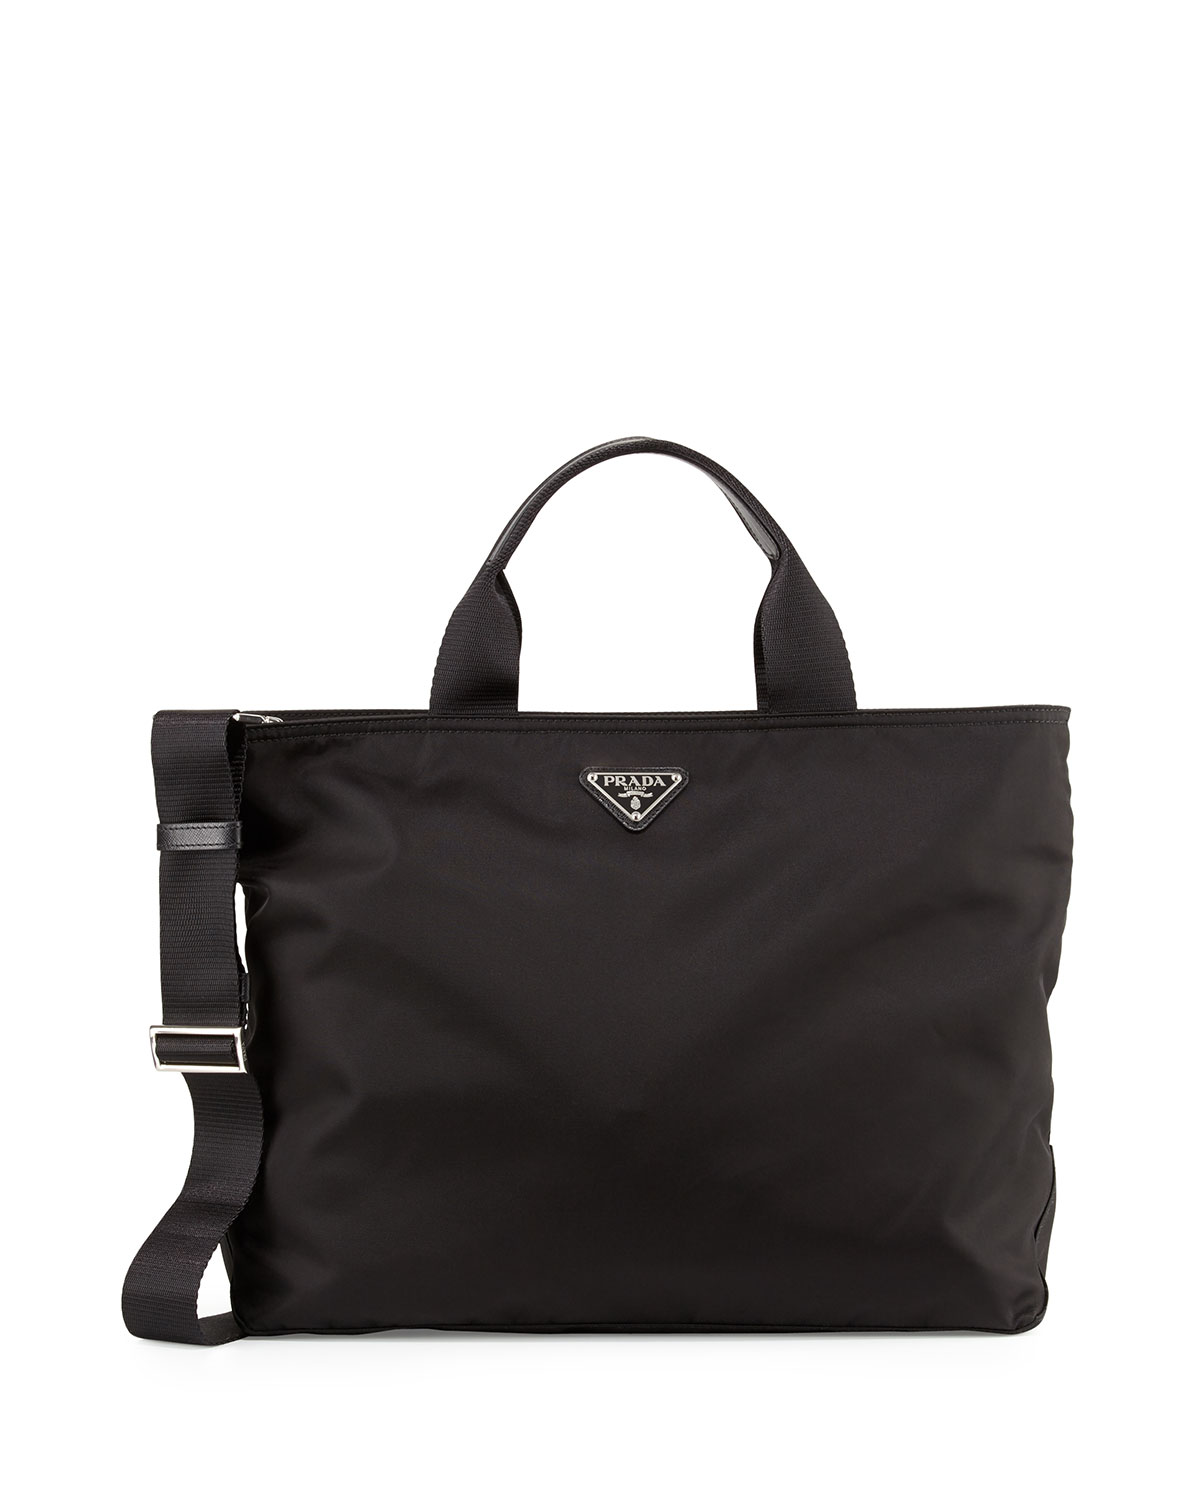 55907710e34b Prada Medium Double-Handle Nylon Tote Bag, Black (Nero) | Neiman Marcus